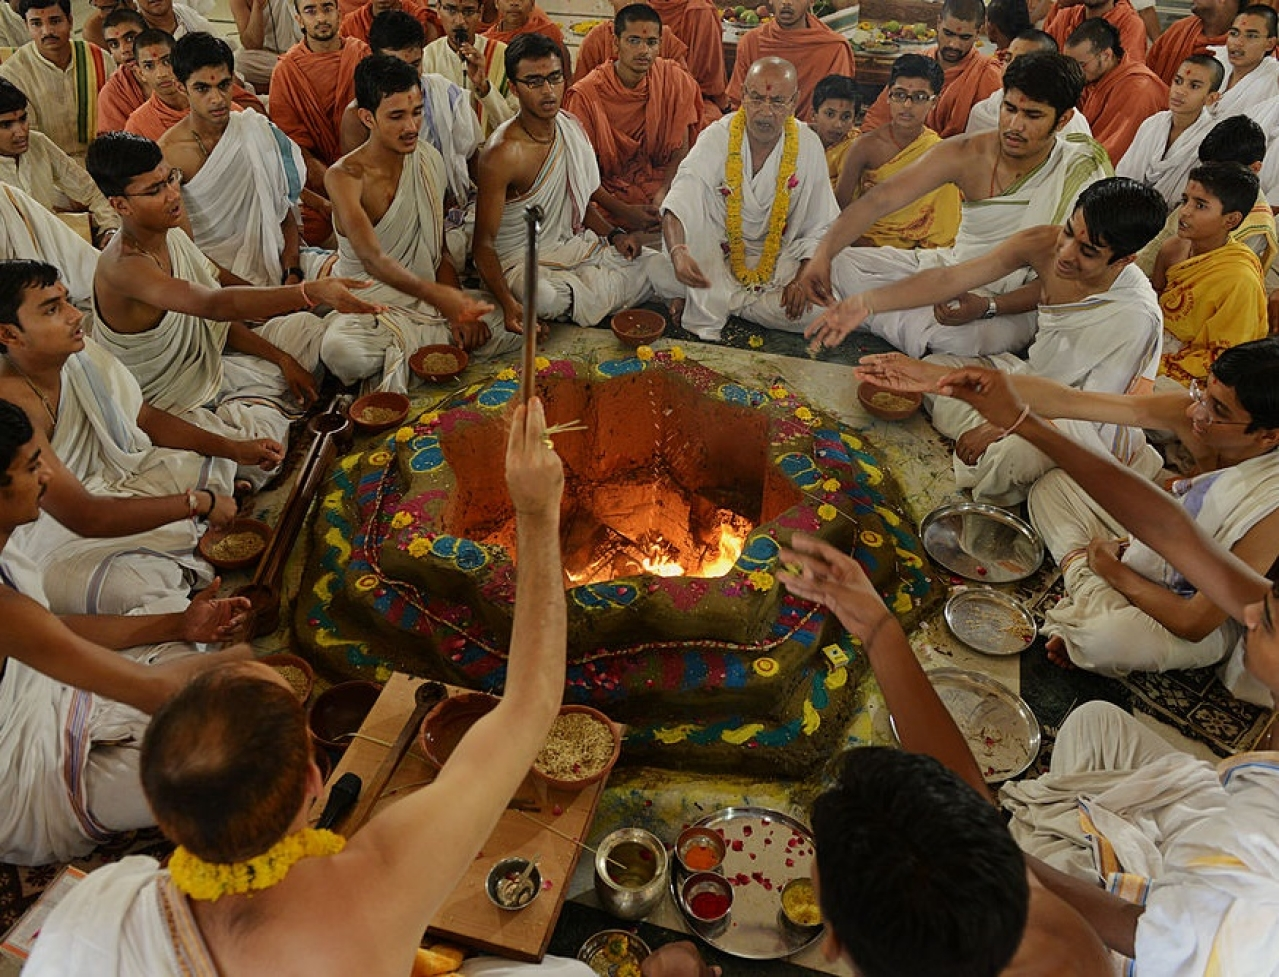 Indian students and their Gurus,teachers, perform a ritual at a  Swaminarayan Gurukul Vishwavidya Pratisthanam (SGVP) temple . Getty Images